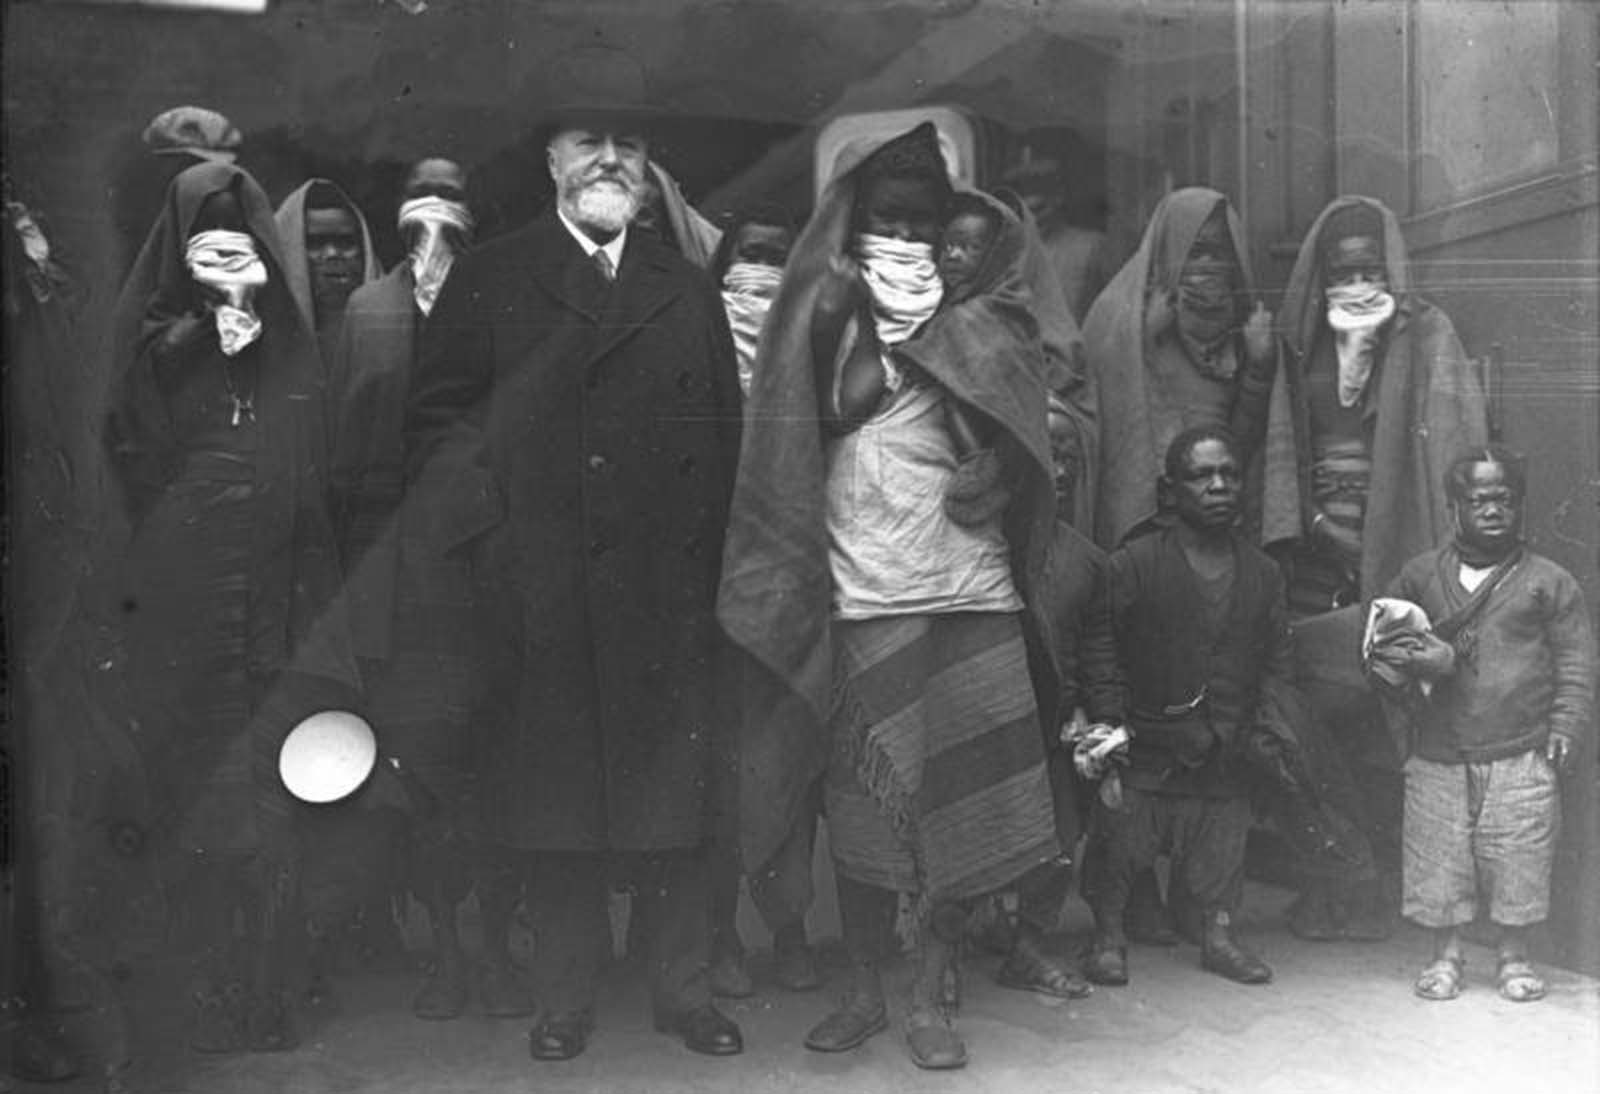 Professor Lutz Heck, director of the Berlin Zoo, arrives in Berlin, 1931. With him are members of the African Sara-Kaba tribe, who will soon be put on display. The scarves over the women's mouths are covering their lip plates.